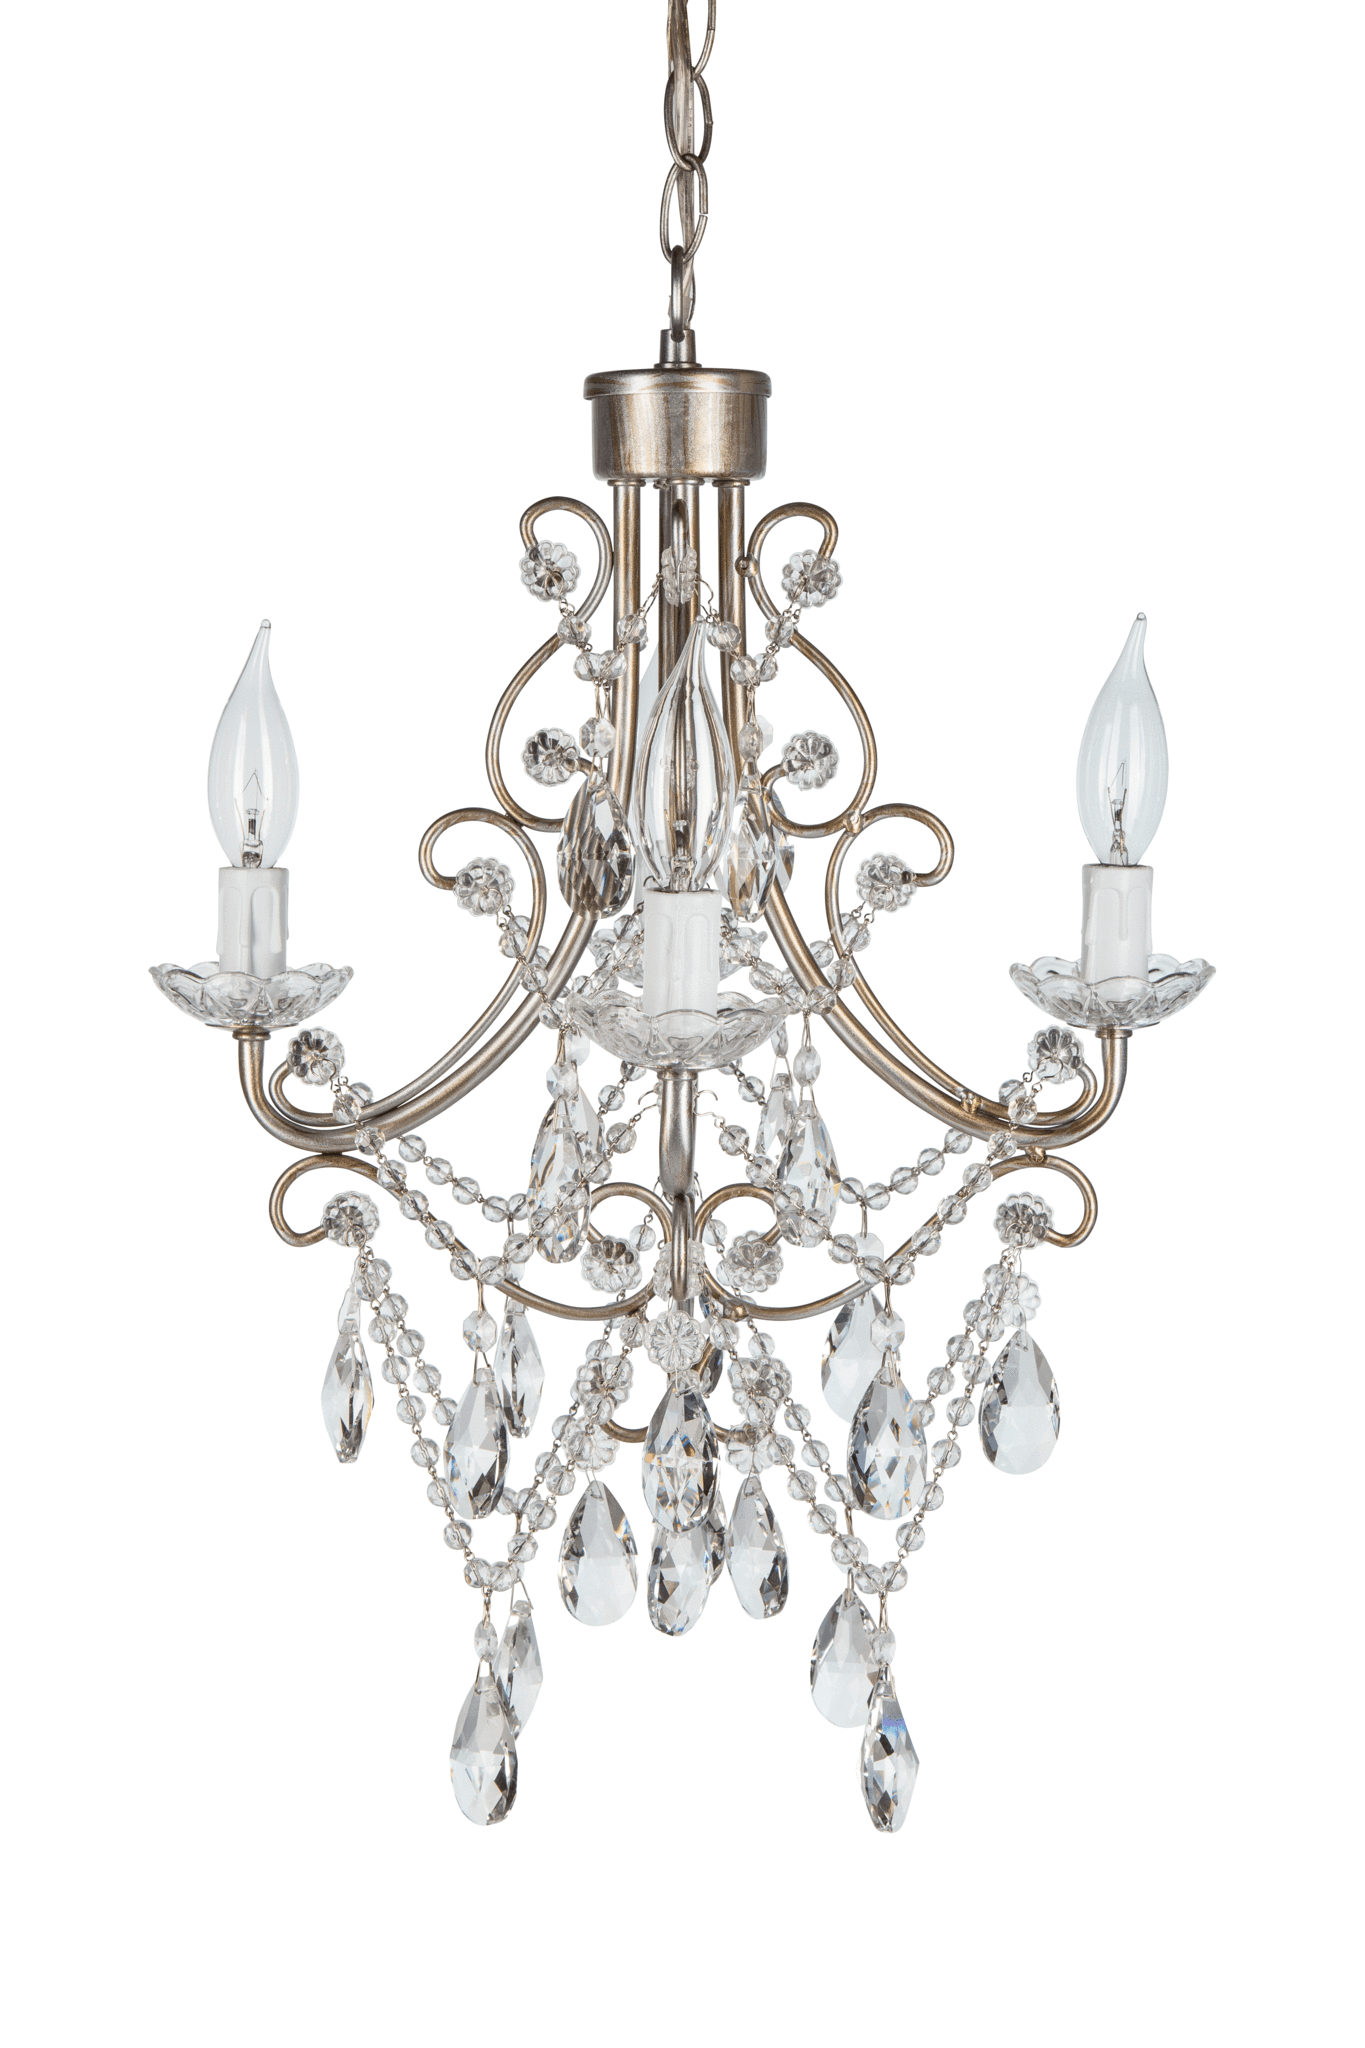 Antique 4 light crystal chandelier silver madeleine collection 4 light antique crystal plug in chandelier silver arubaitofo Image collections